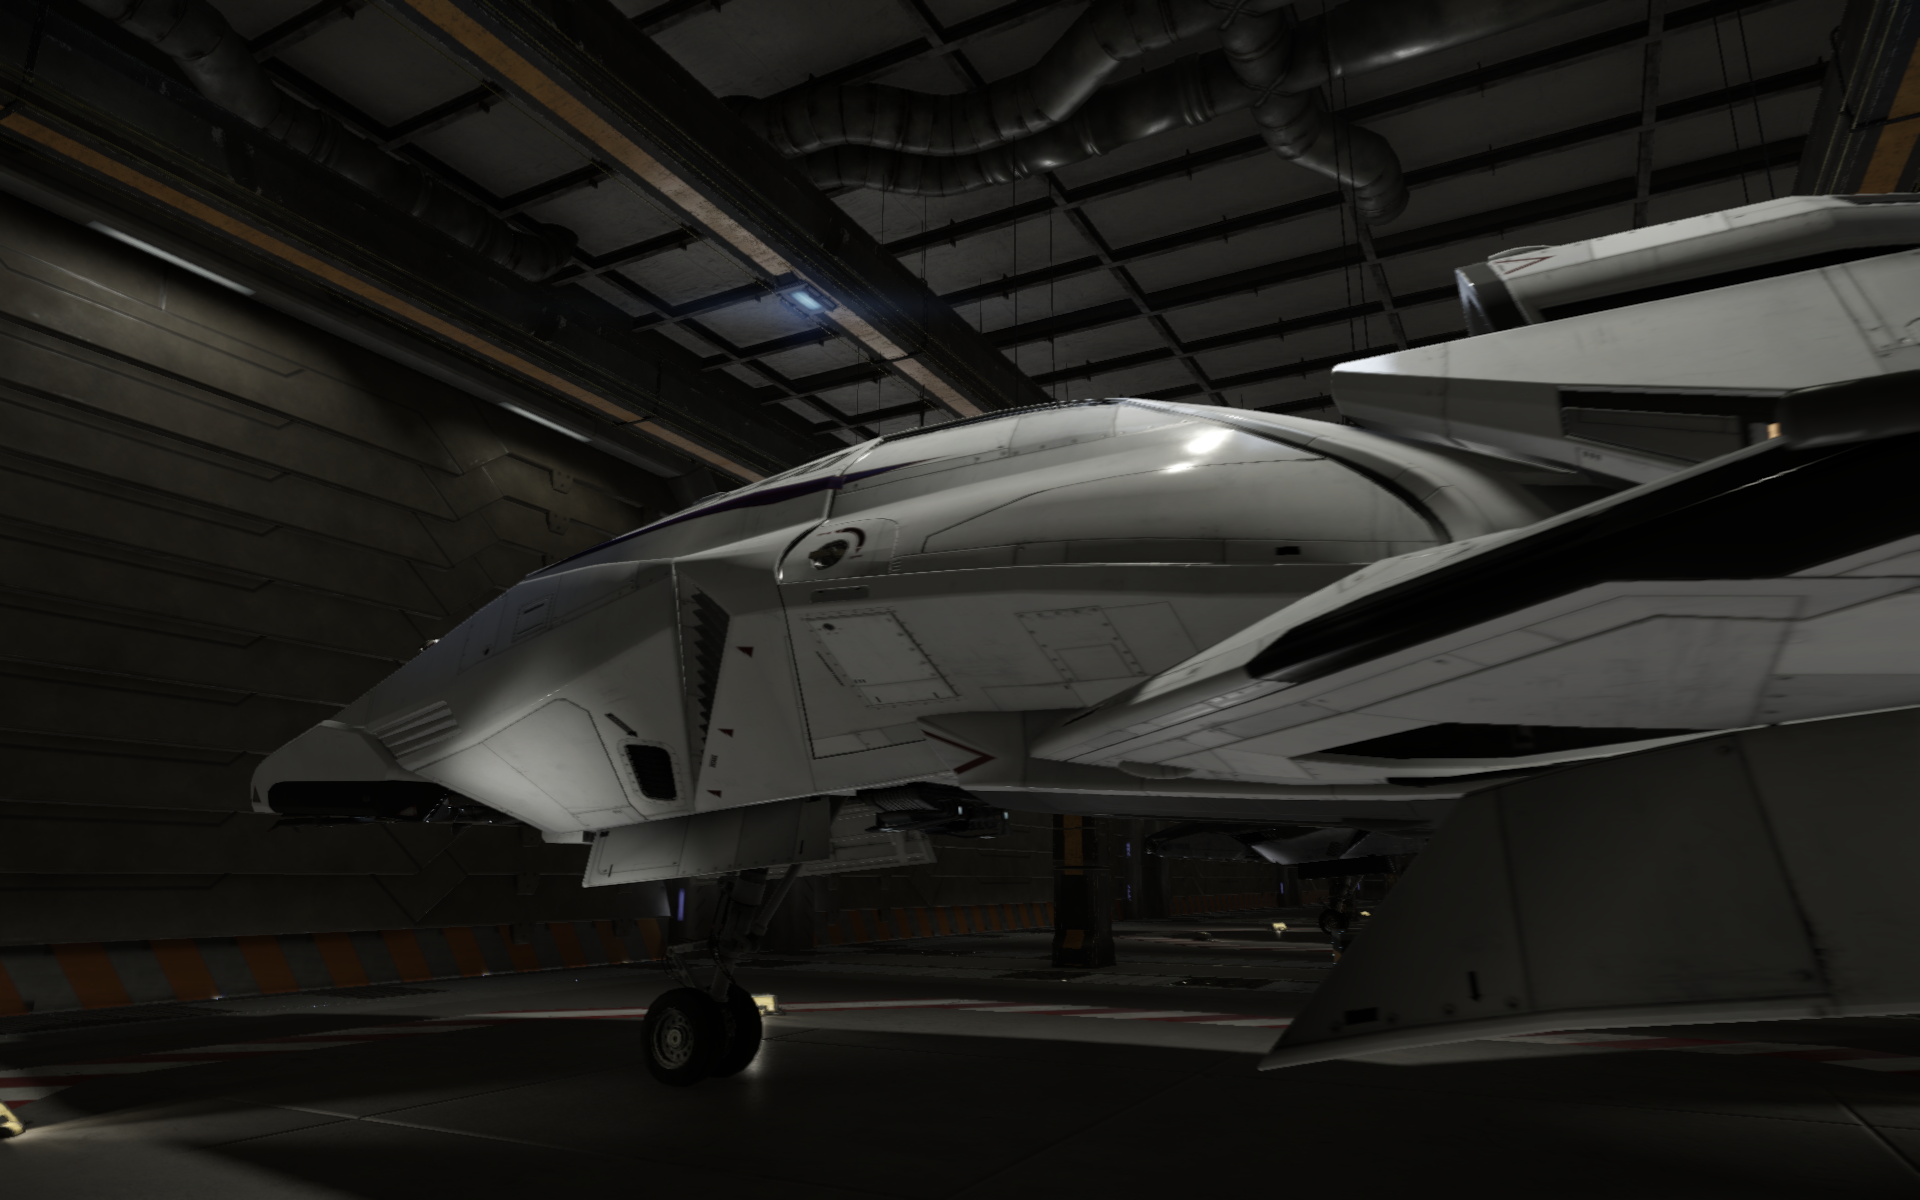 Star Fighter in hangar bay